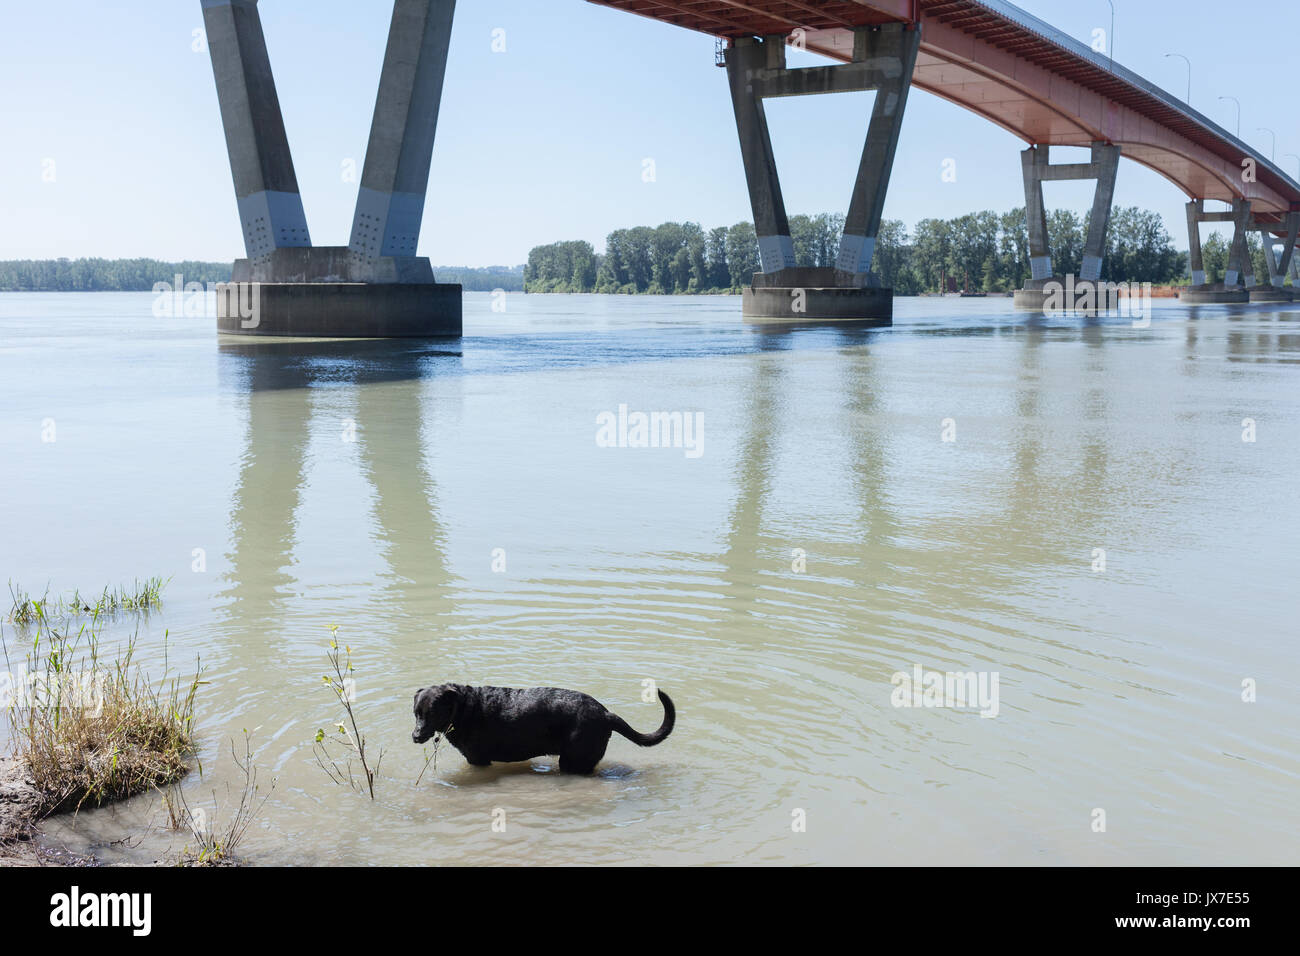 Dog cooling off in Fraser River.  Mission, BC. Canada - Stock Image